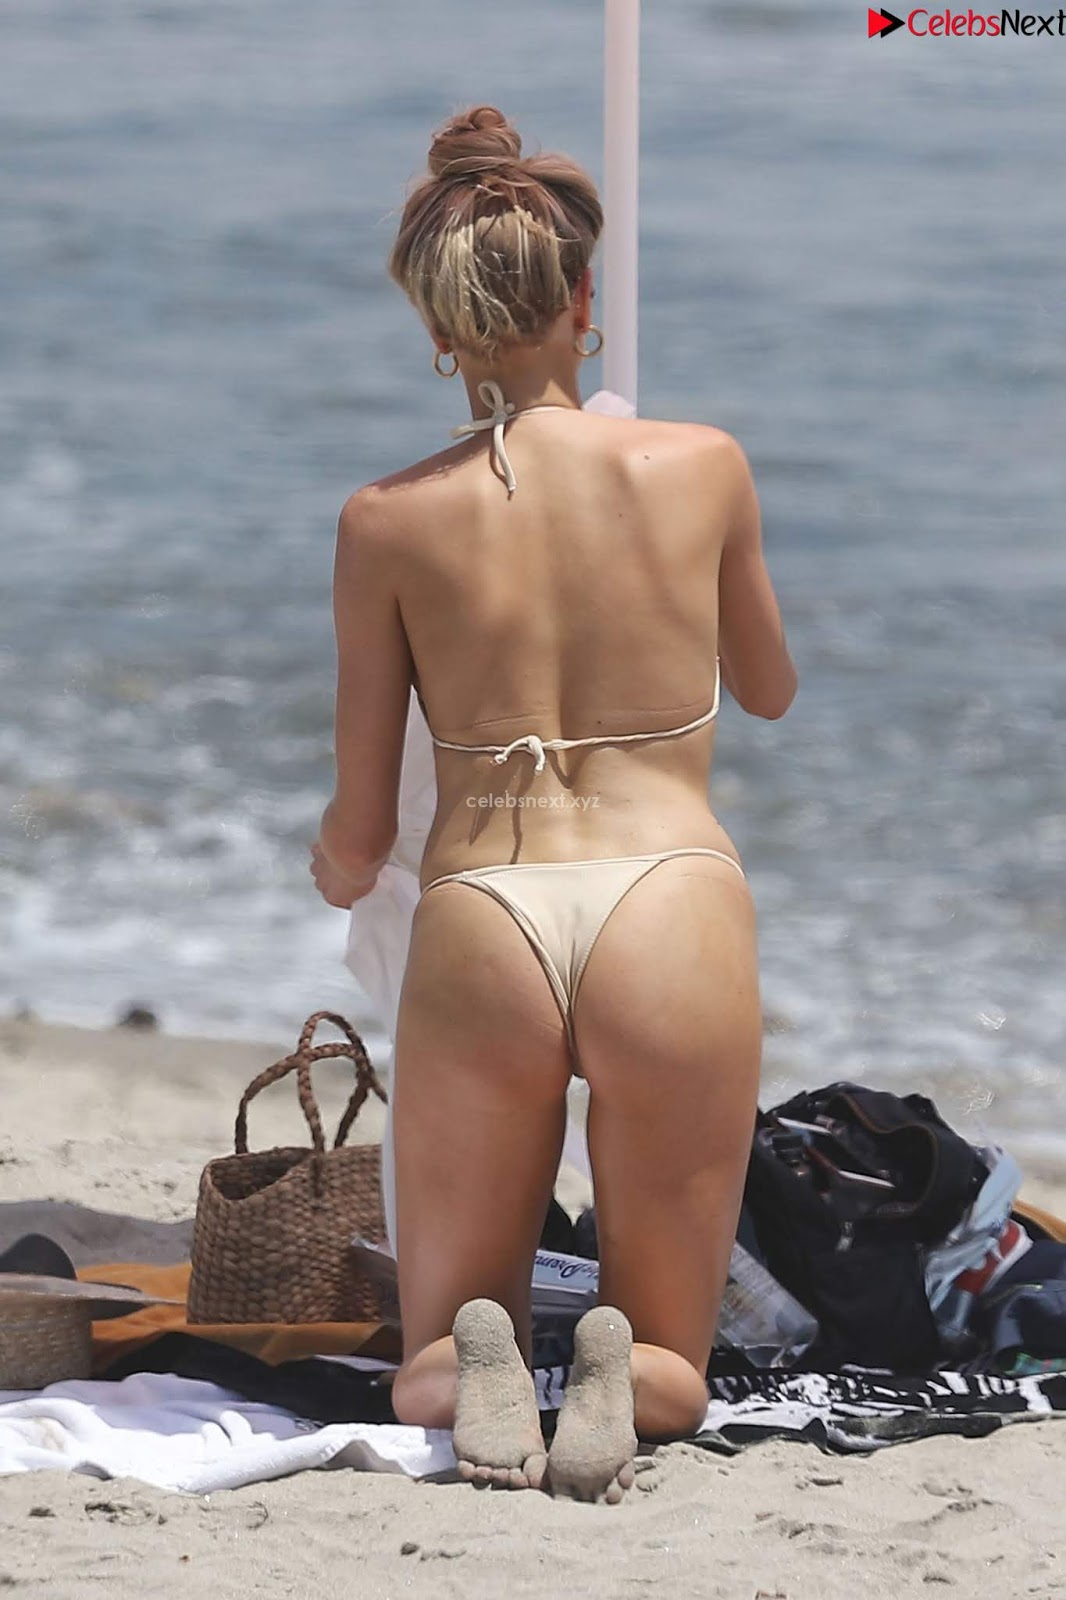 Charlotte McKinney Sexy Booty Ass Butts in Cream Colored Bikini on the beach in Malibu ~ CelebrityBooty.co Exclusive Celebrity Pics